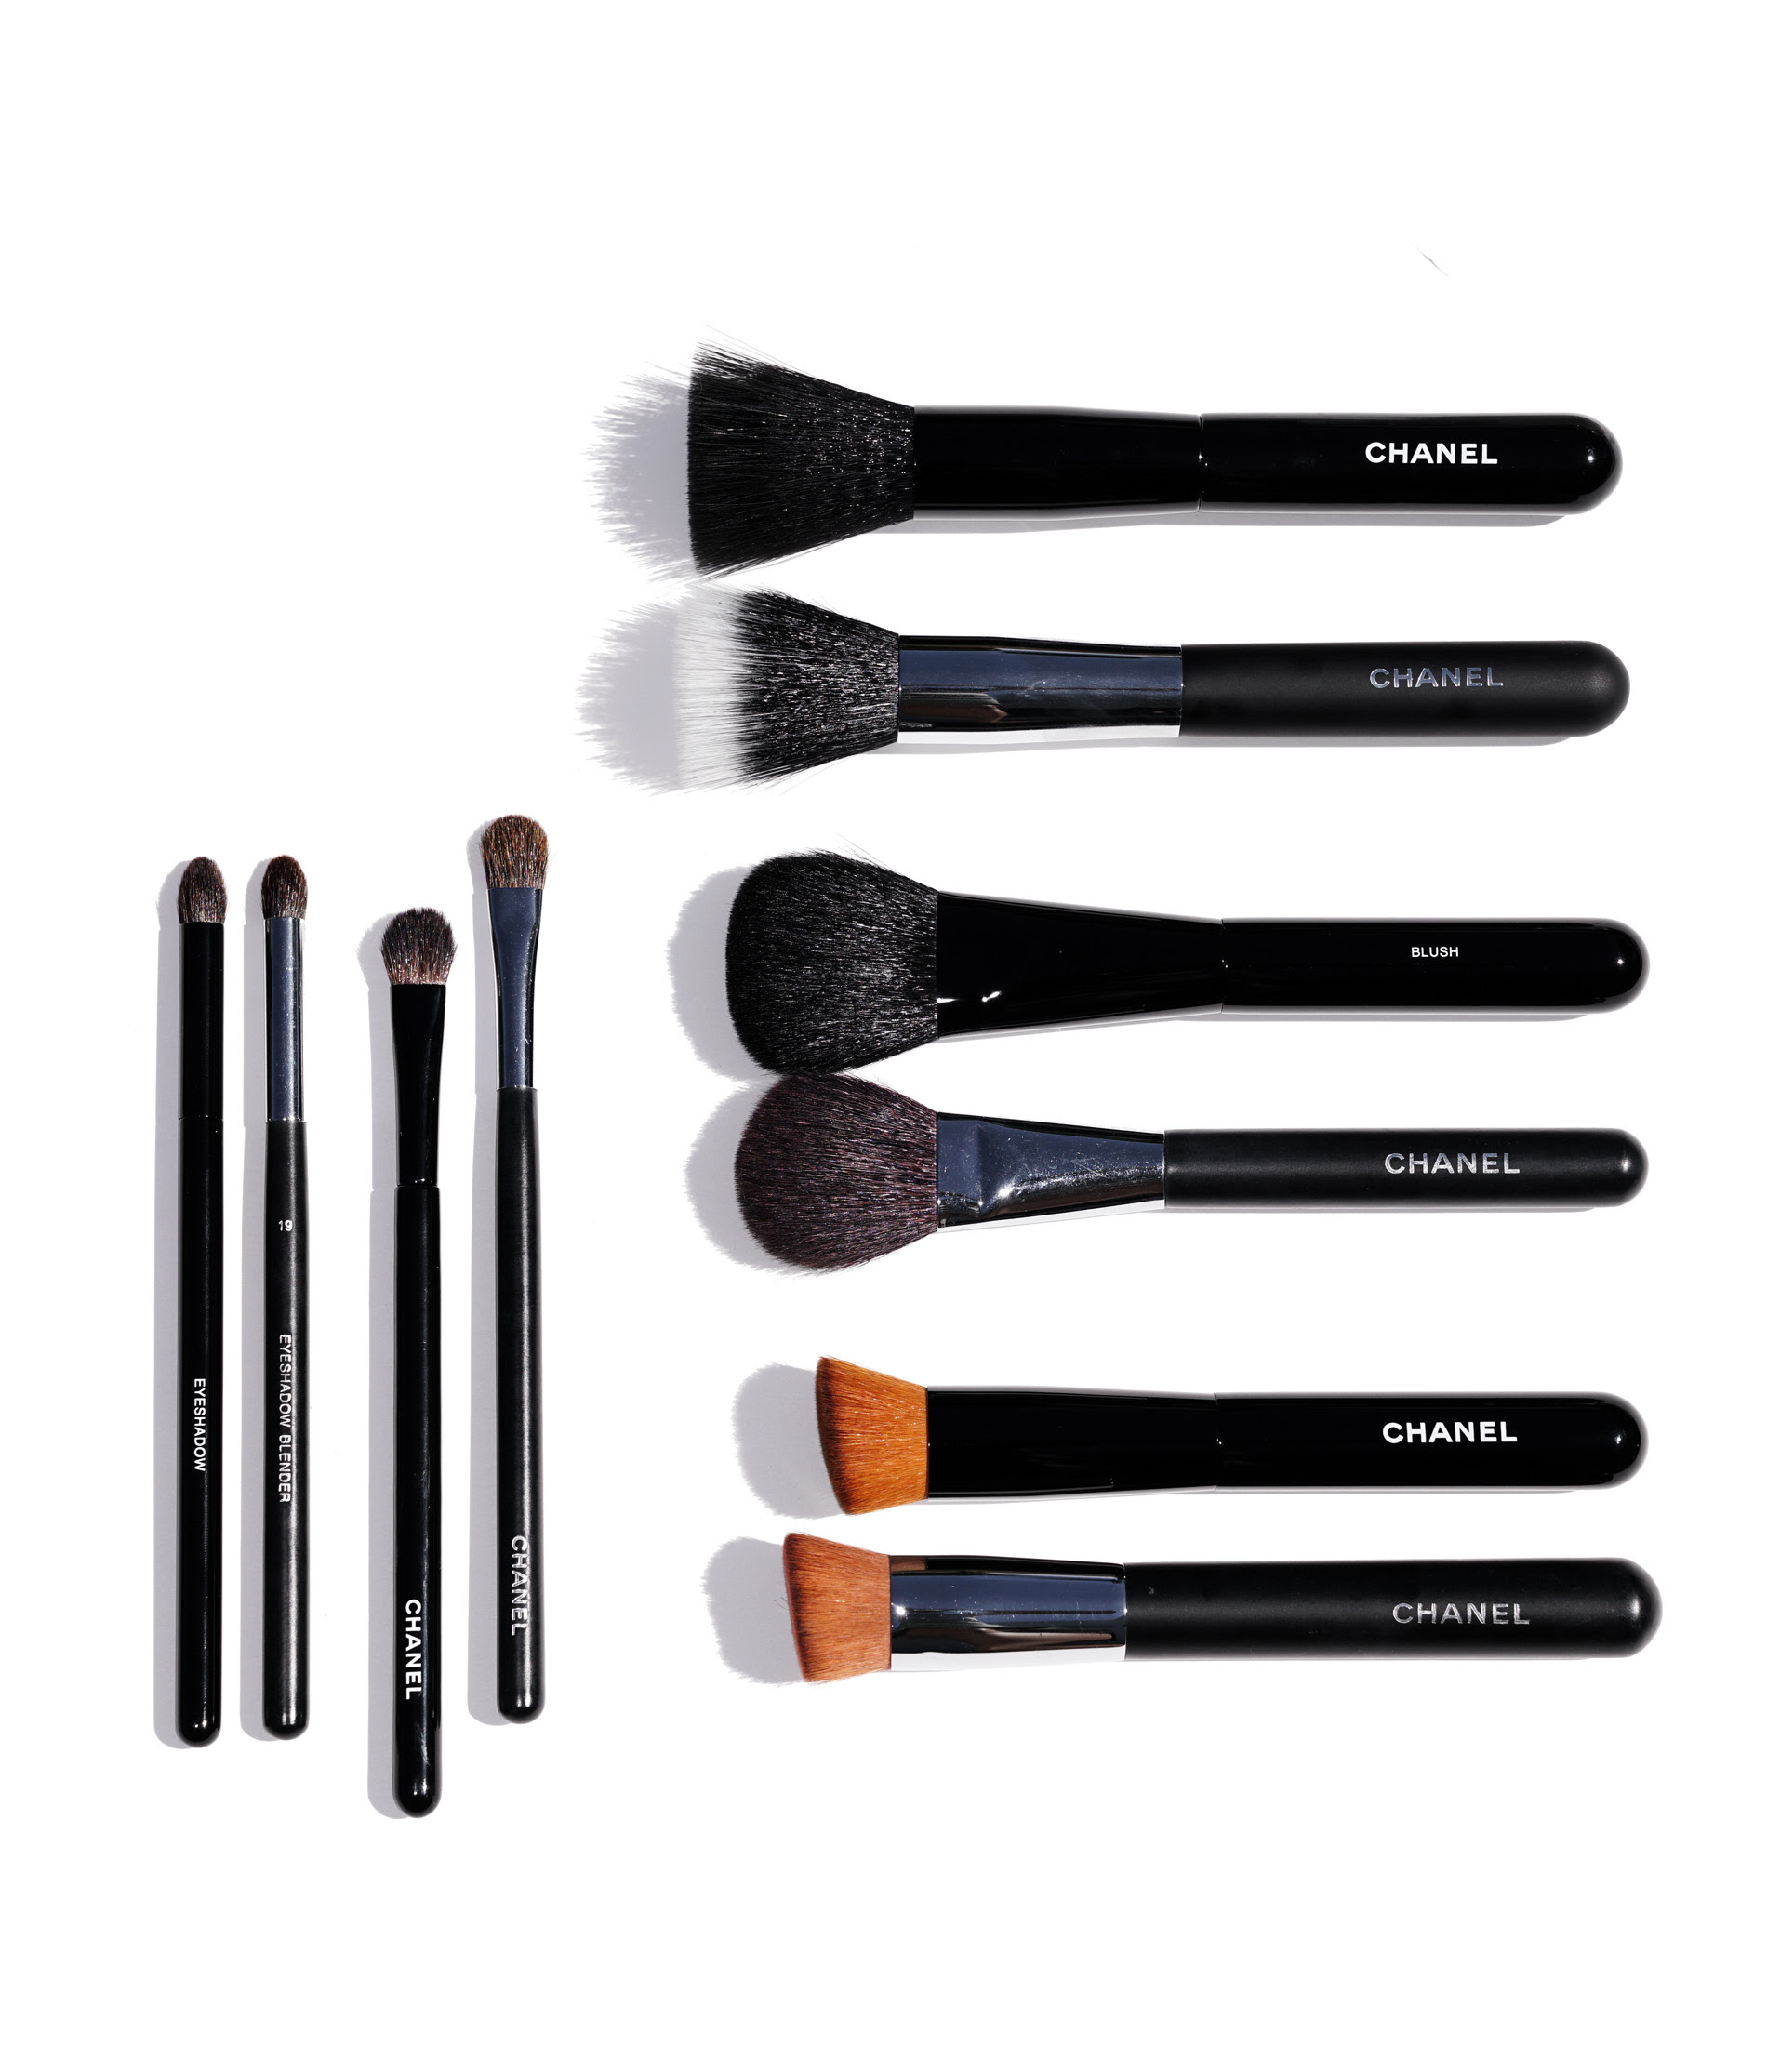 Chanel Makeup Brushes - New Design | The Beauty Look Book